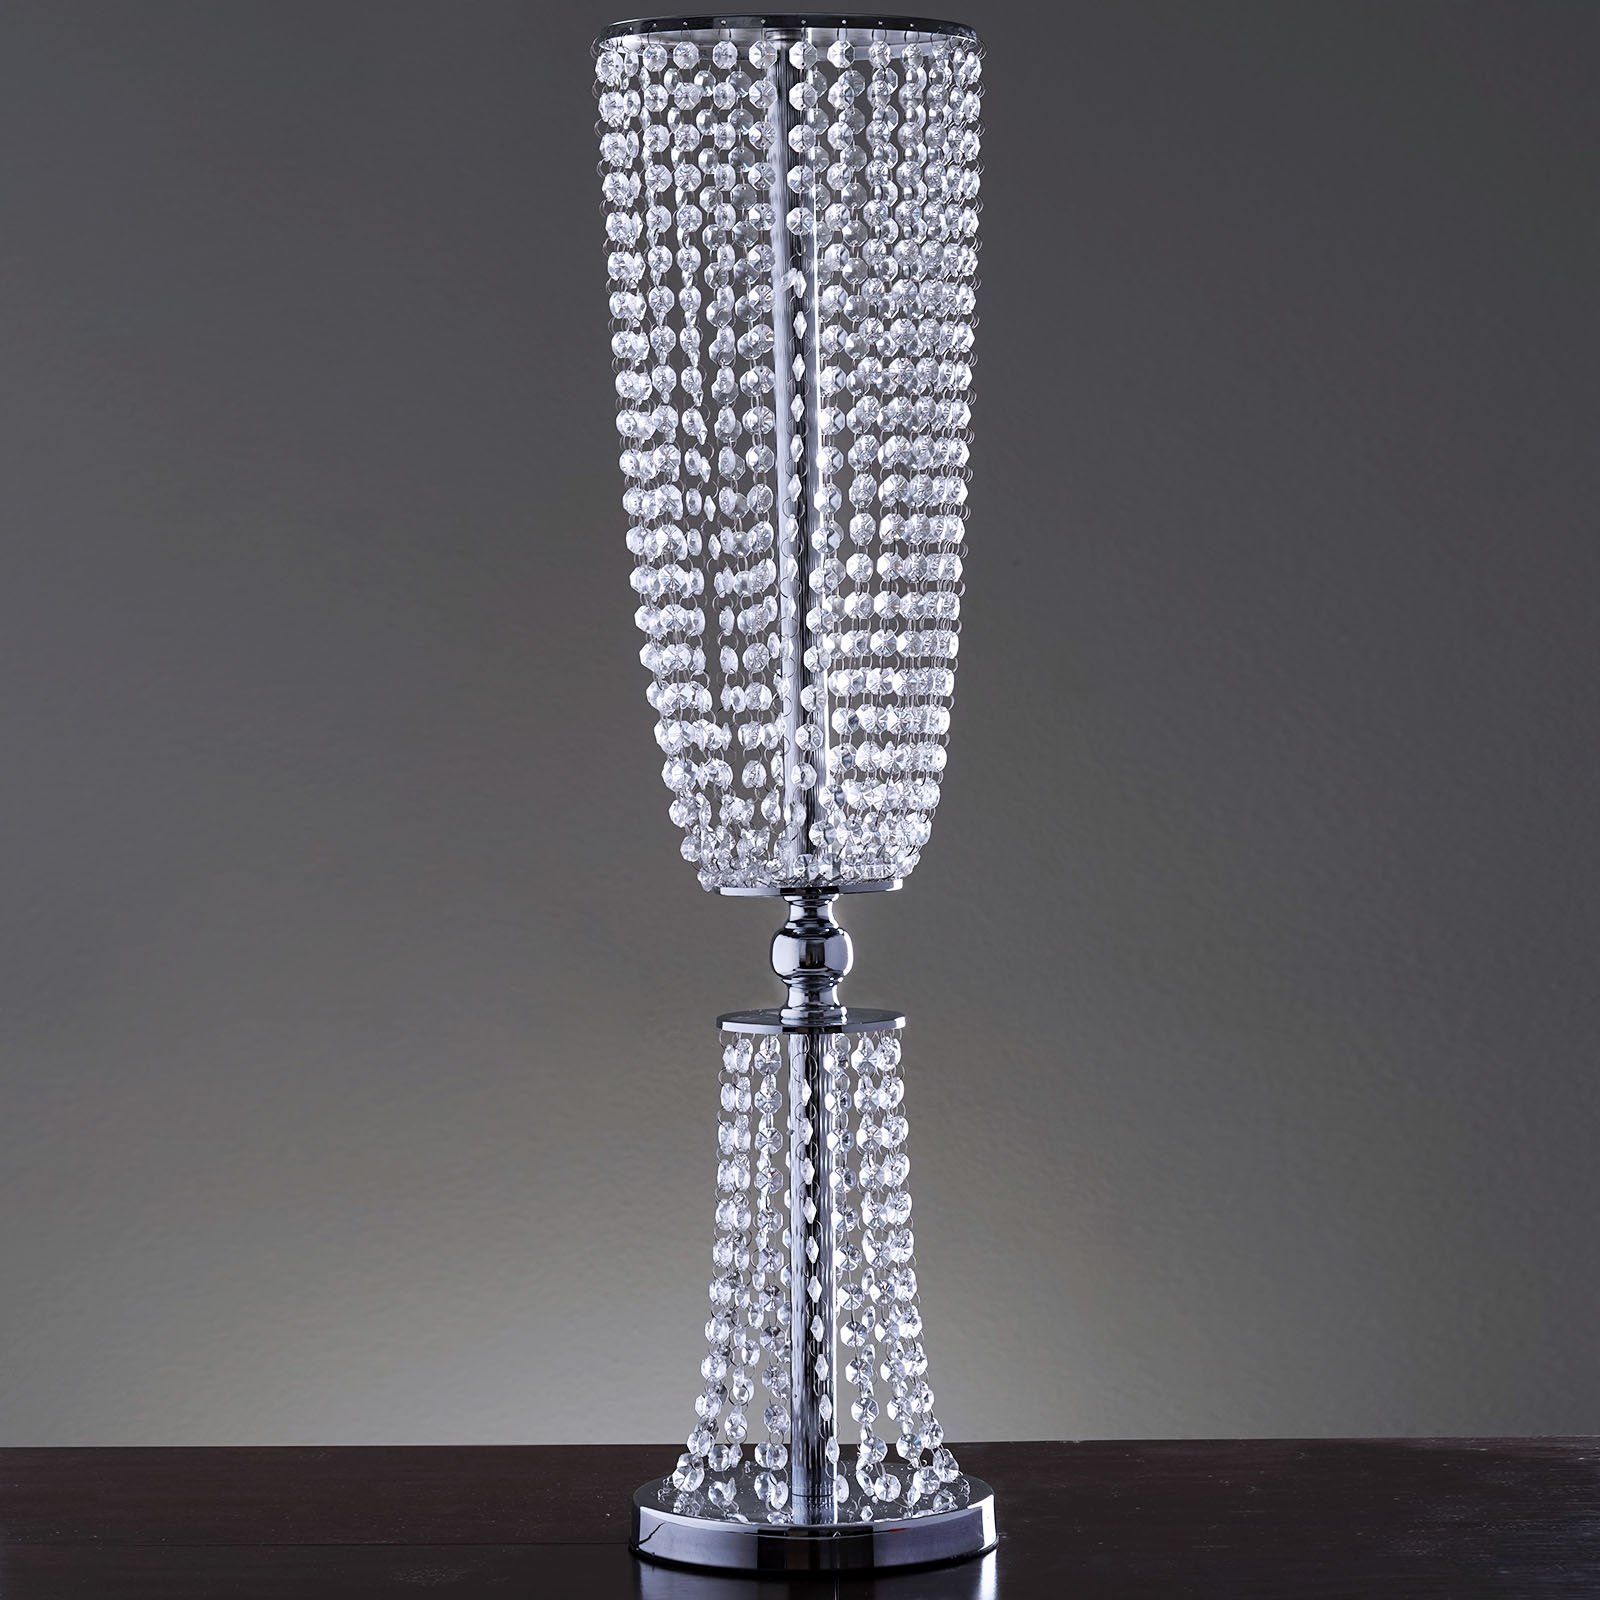 Tableclothsfactory 32'' Tall Exotic Designer Crystal Garland Chandelier Wedding Centerpiece